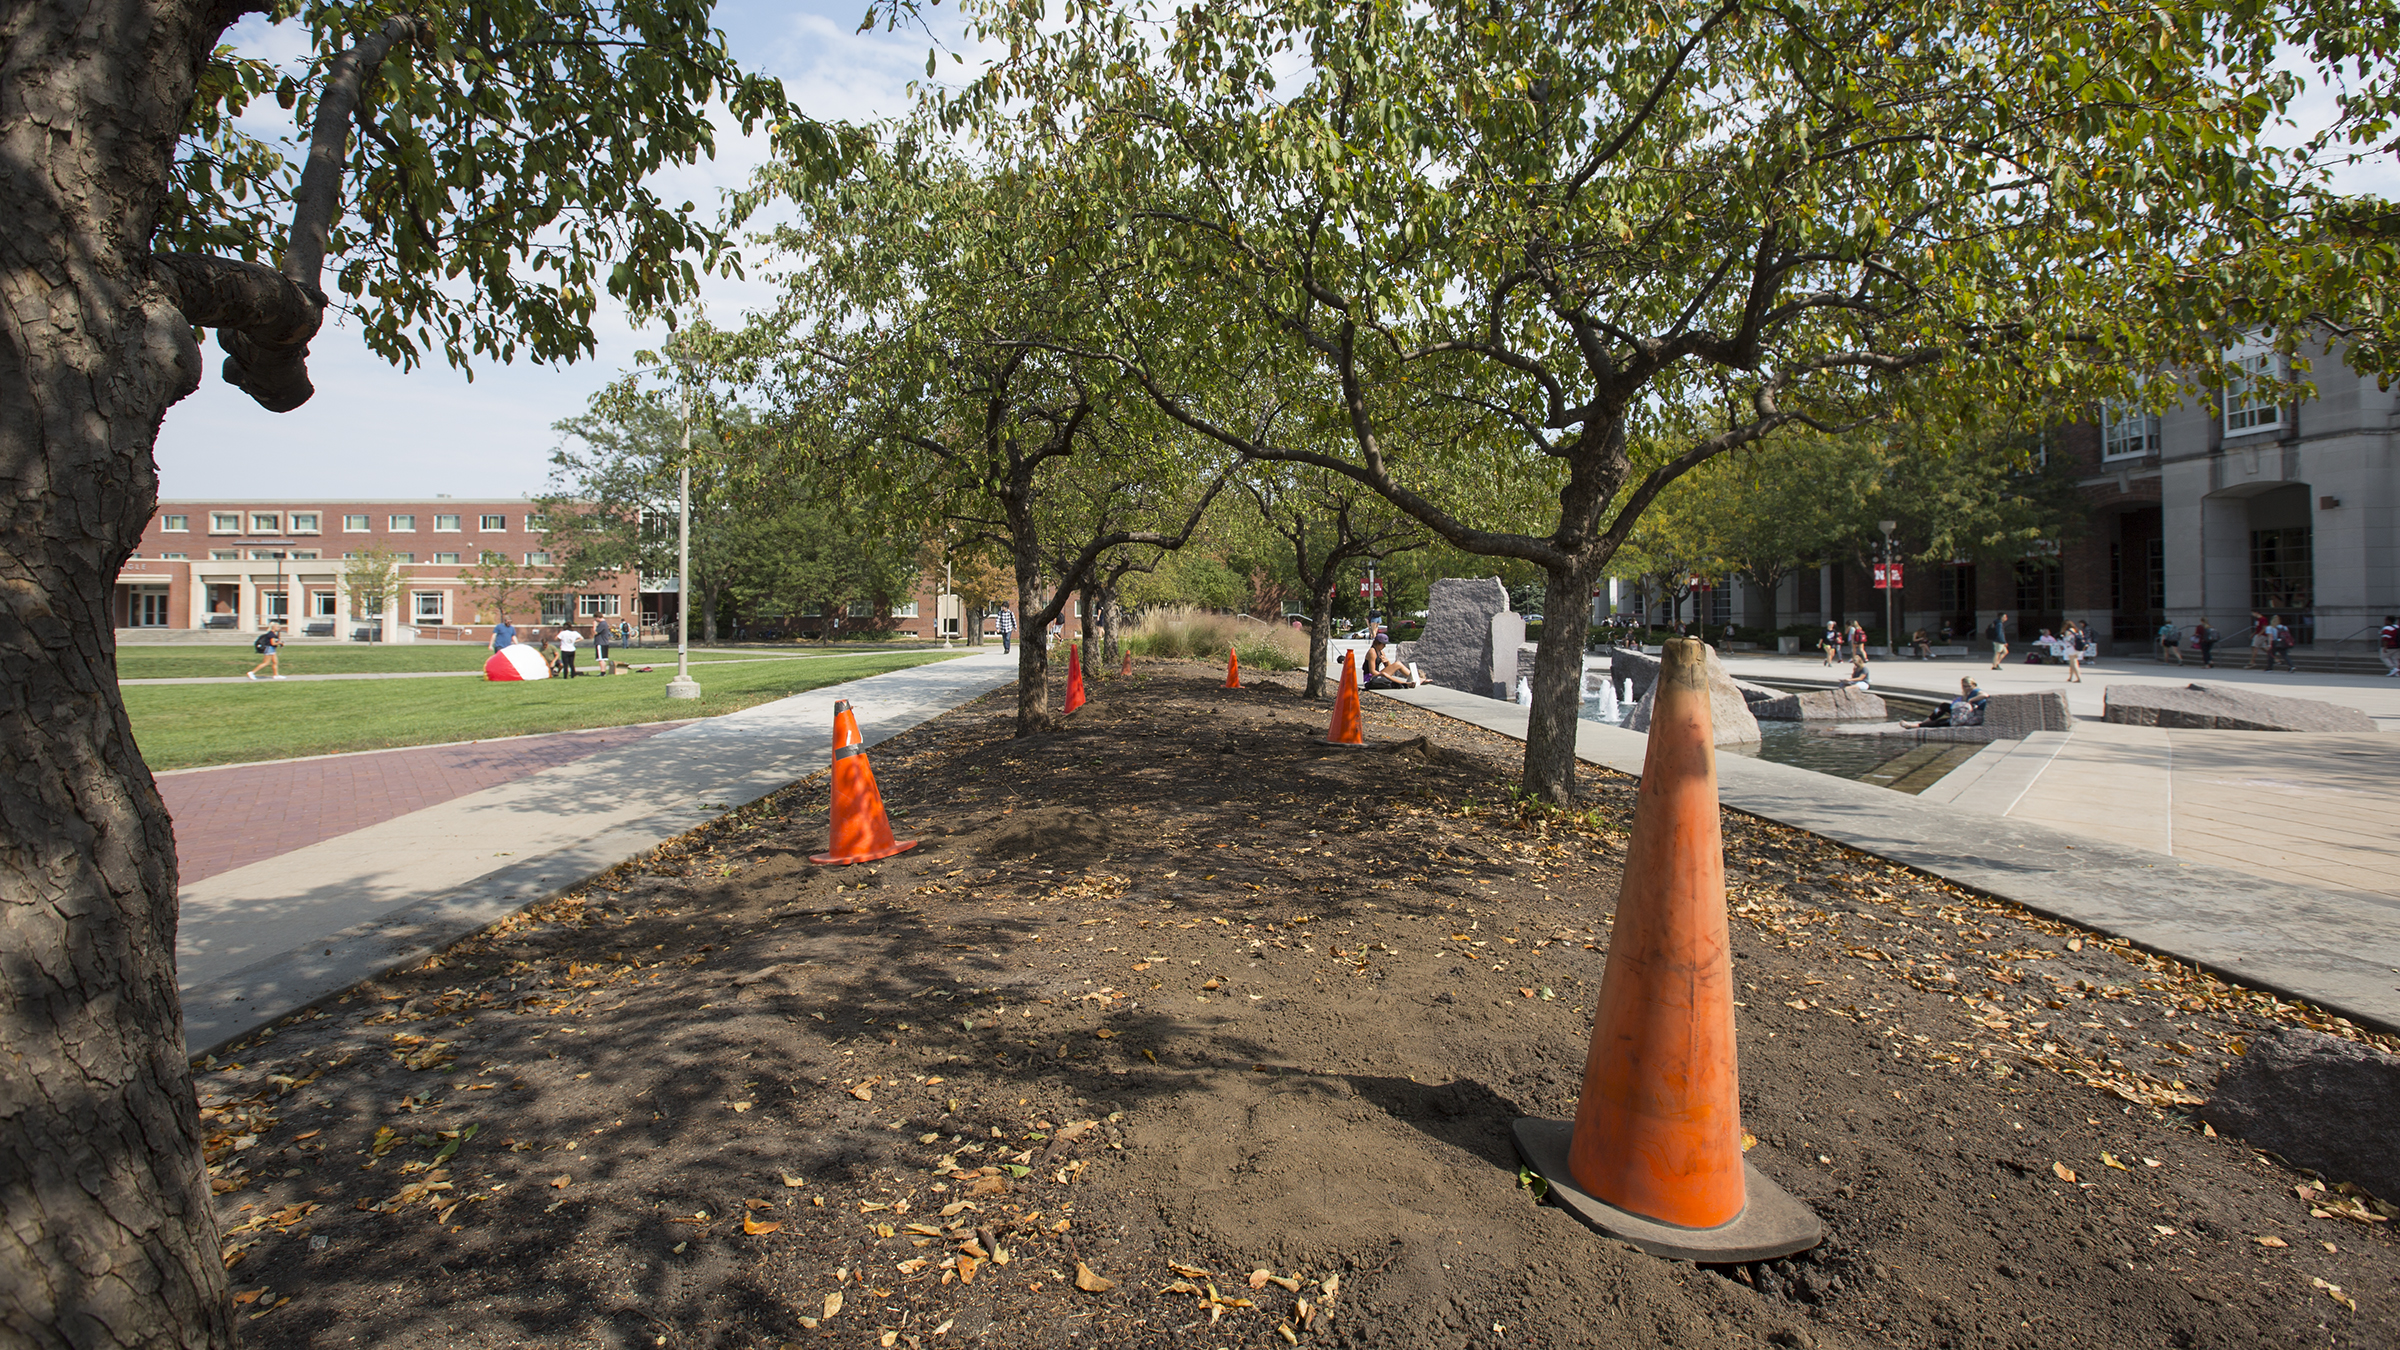 Medium image of construction cones mark spaces where poles will be placed for nebraska u0027s new hammock hangout  work  troy fedderson   university  munication